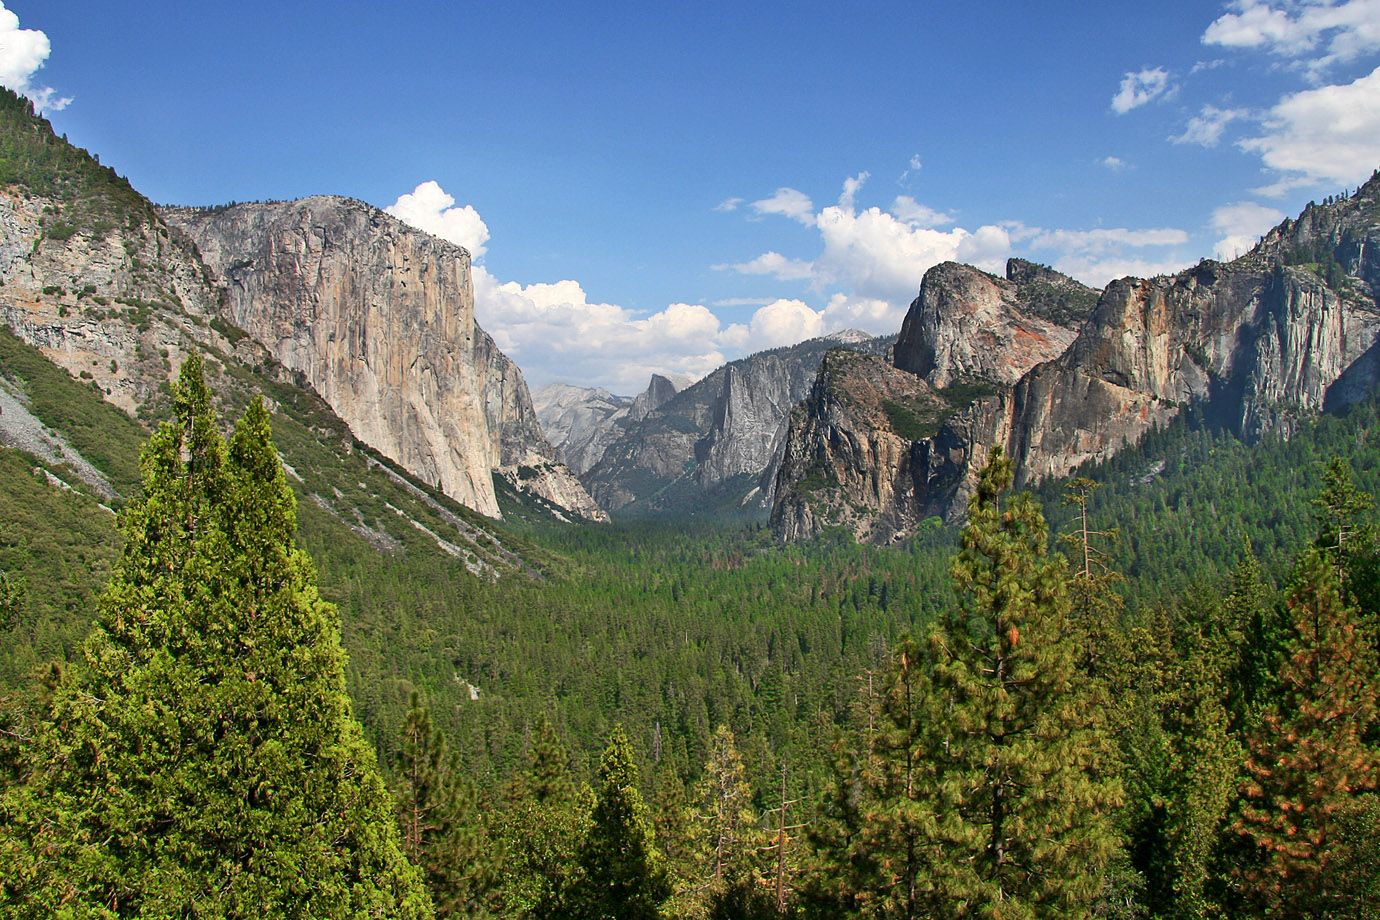 Yosemite-Nationalpark, Kalifornien, USA